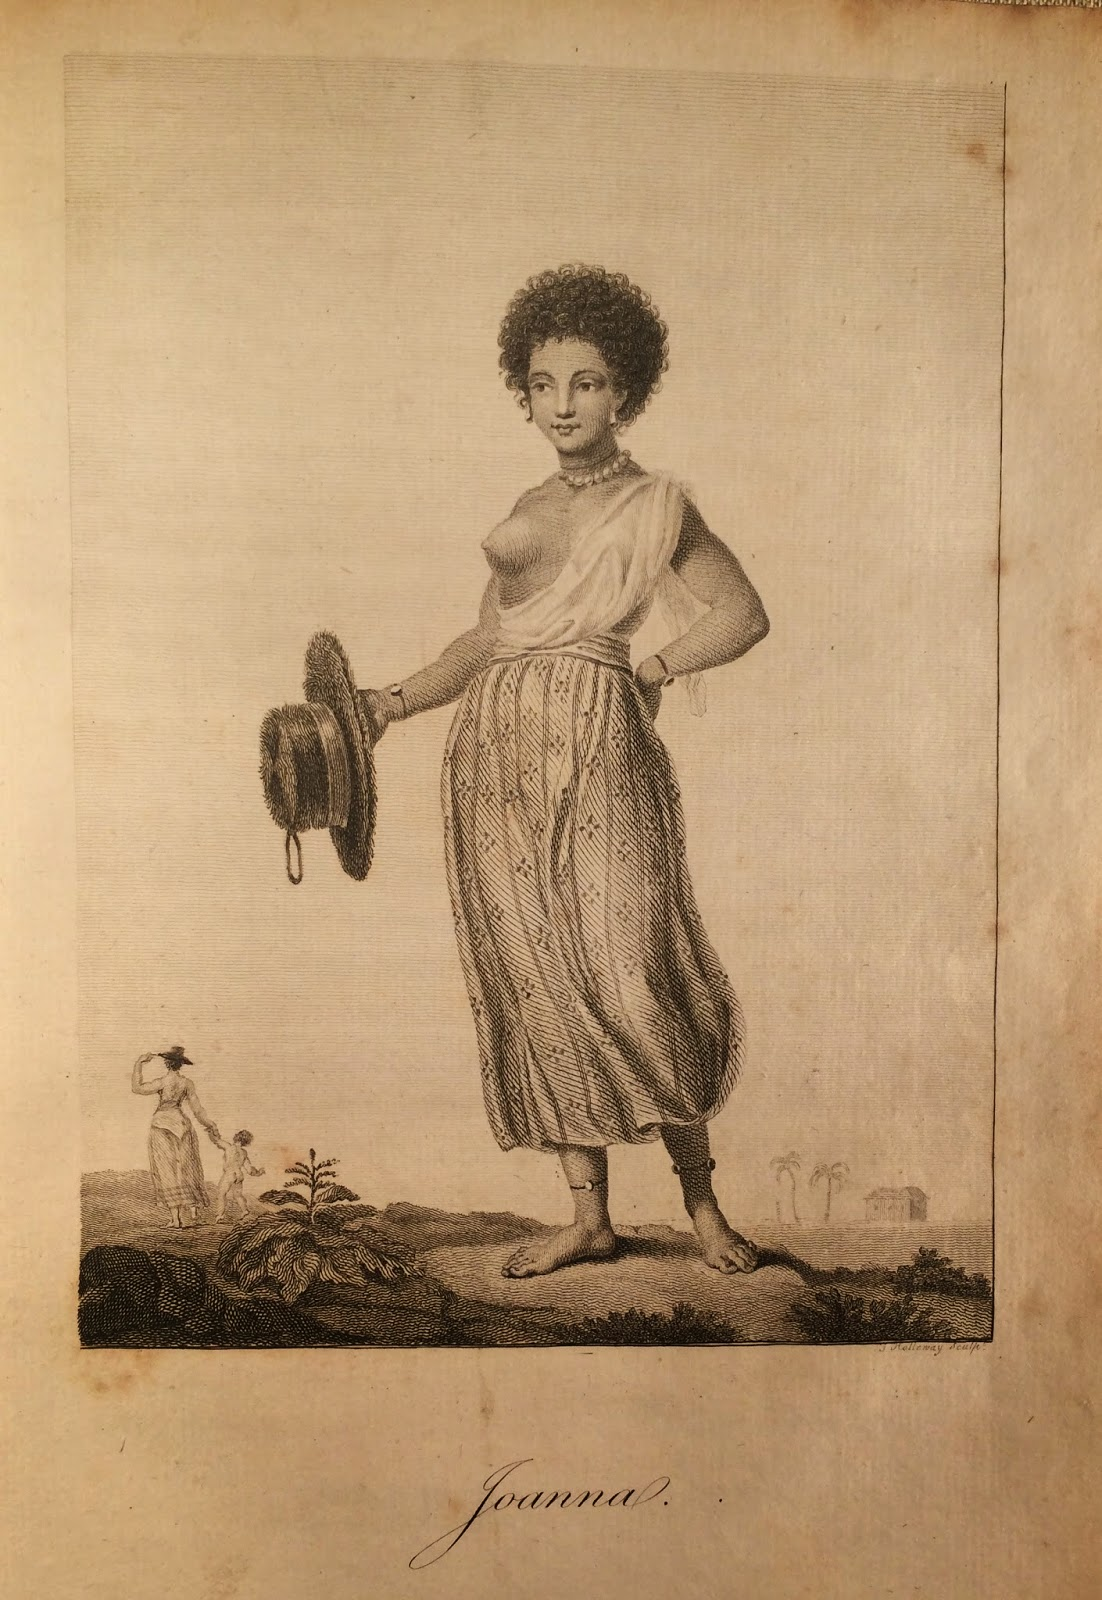 A full-page illustration of Joanna, a mixed-race woman, depicted in jewelry and revealing clothing. In the background are the small figures of another woman holding the hand of a child.